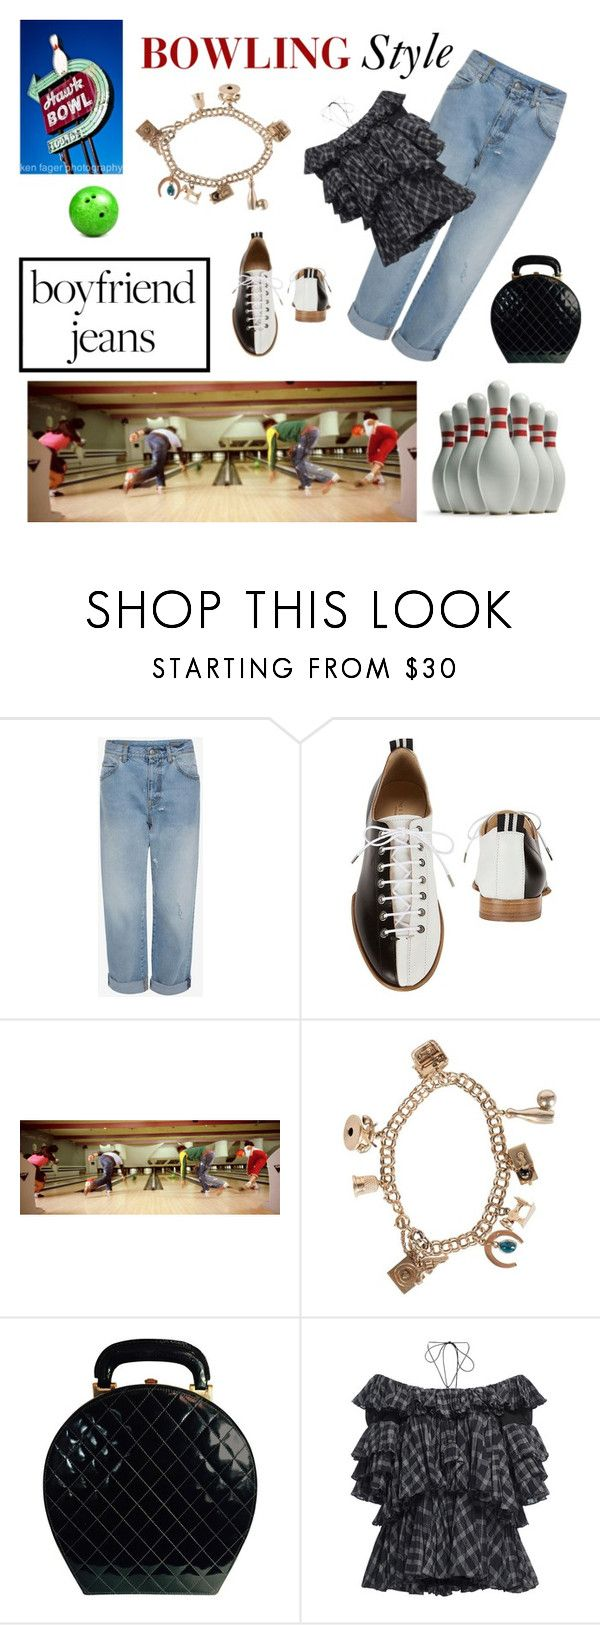 """""""Bowling Style"""" by scolab ❤ liked on Polyvore featuring rag & bone, Chanel and Tome"""